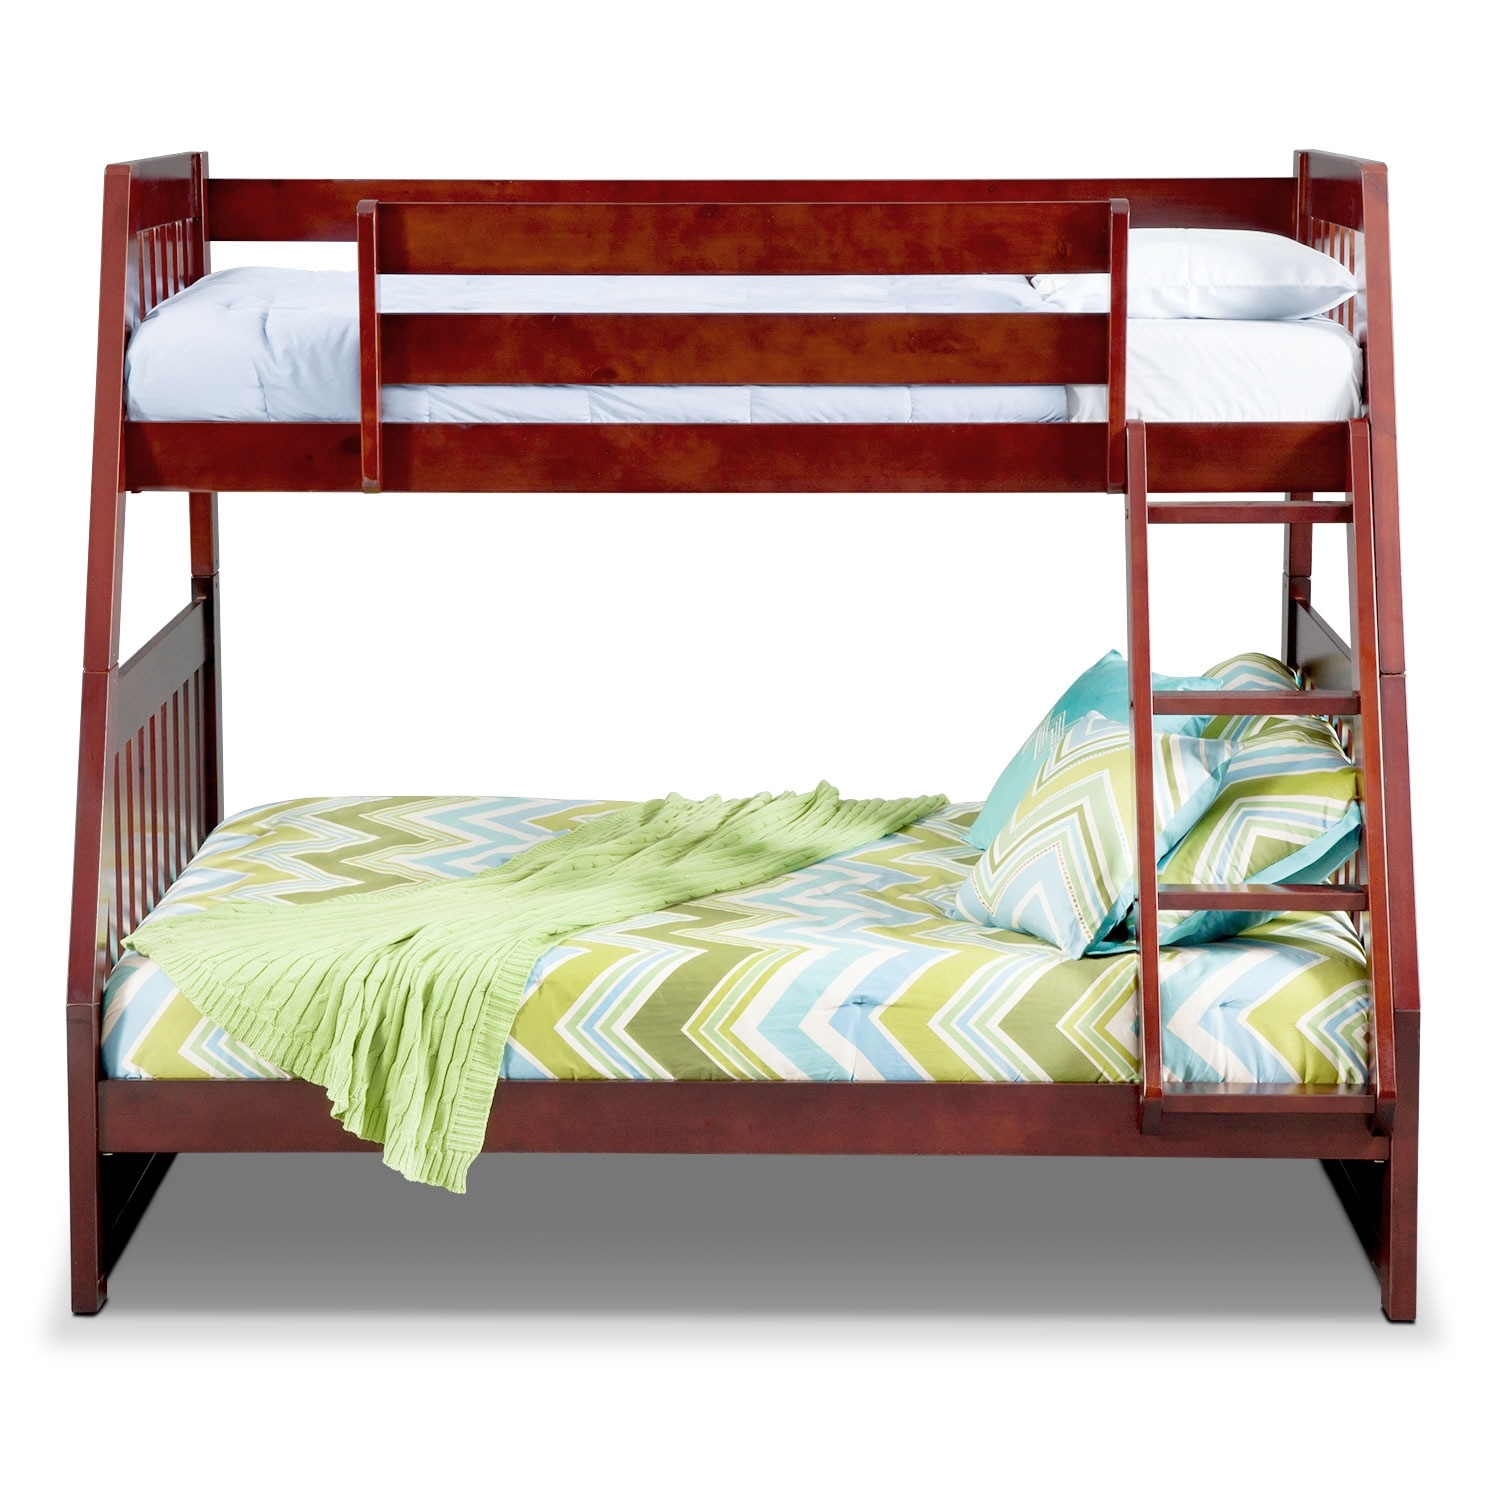 Merlot Bunk Bed - Ranger Storage Bunk Bed Merlot Value ...